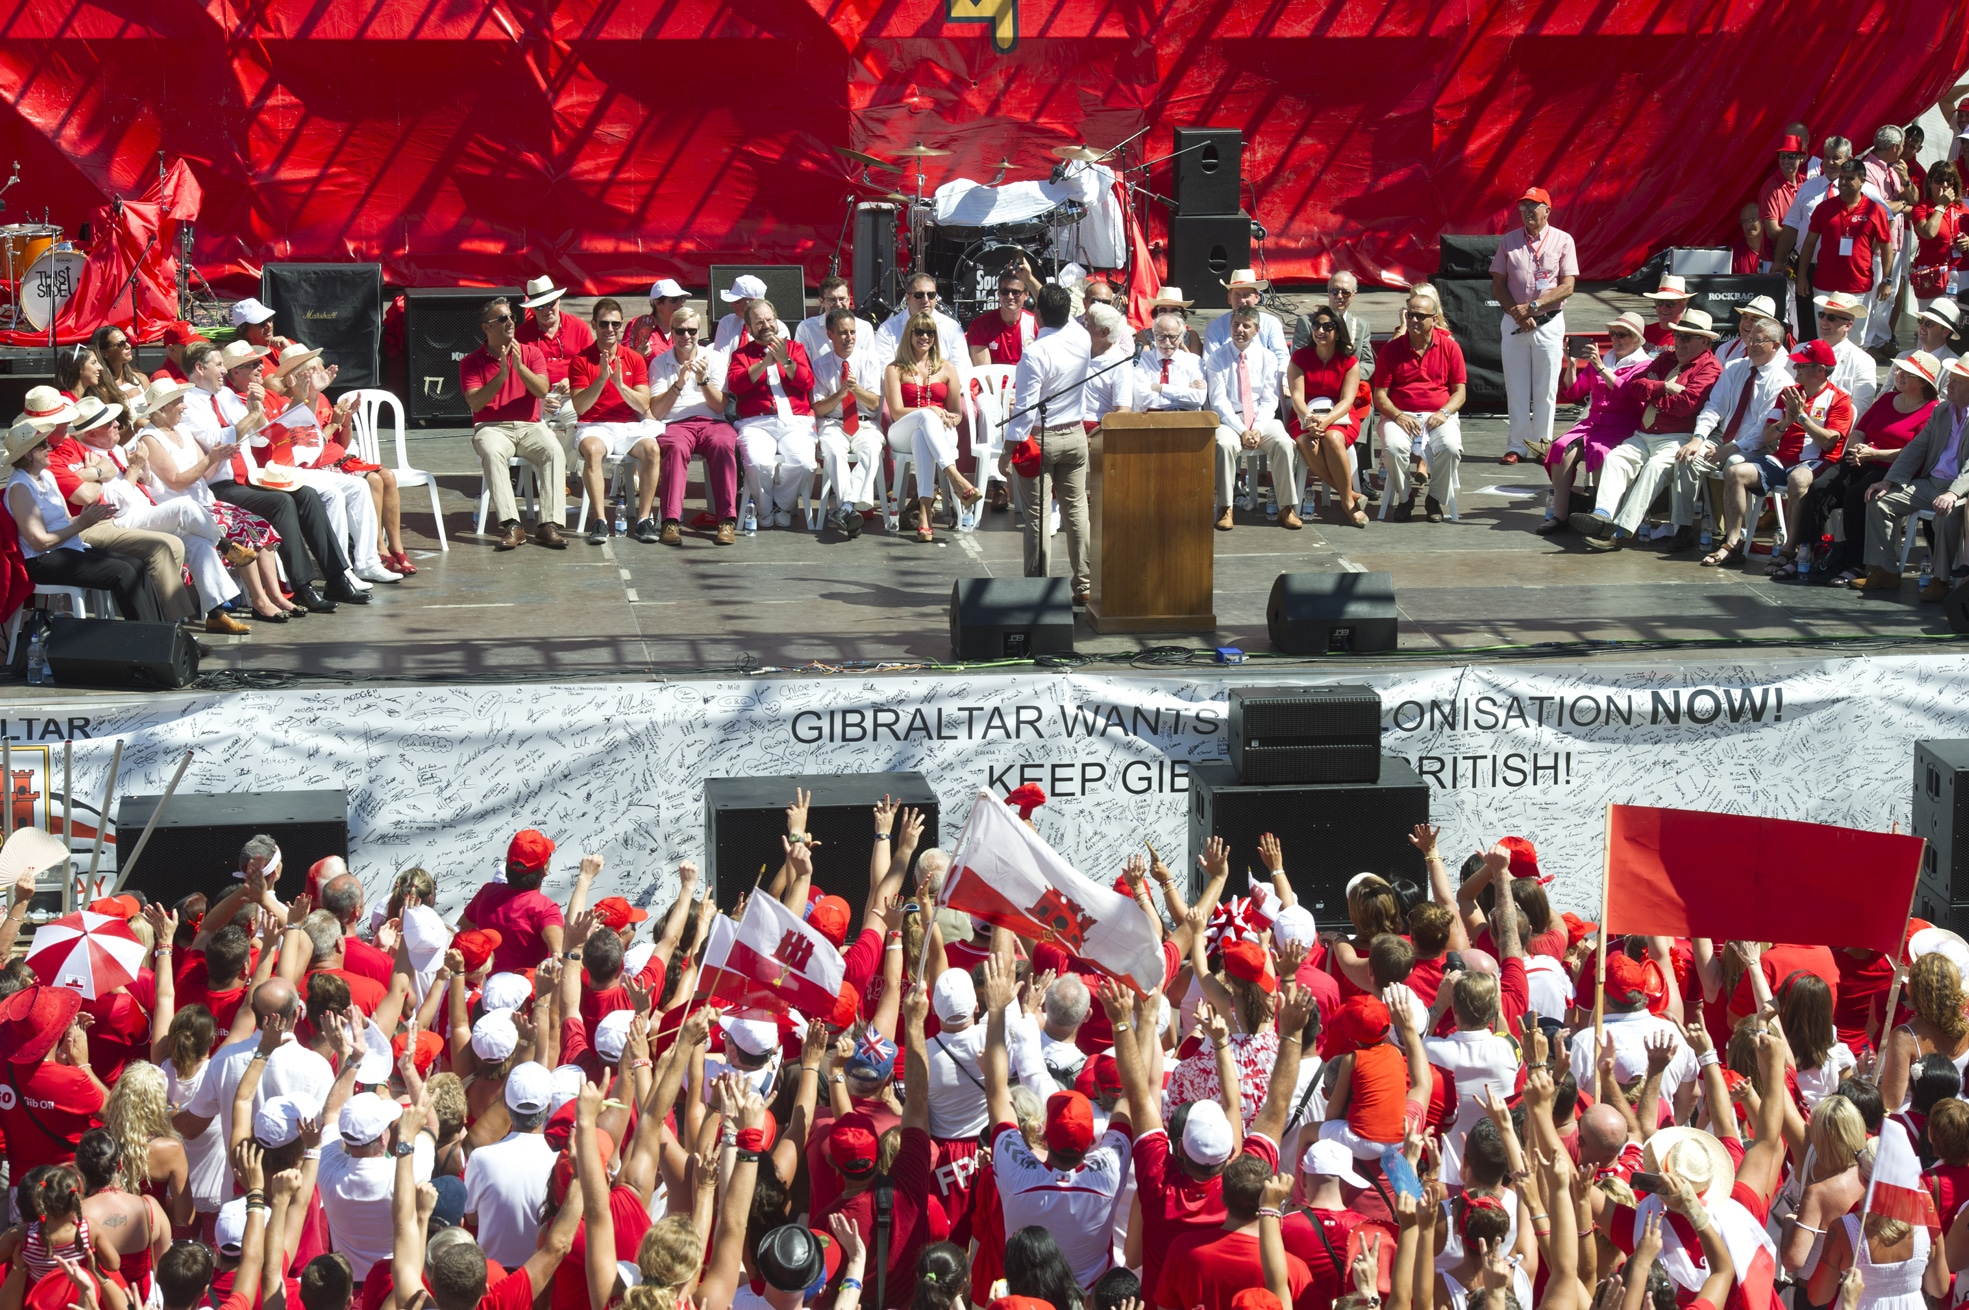 10-septiembre-2014-national-day29_15201159832_o